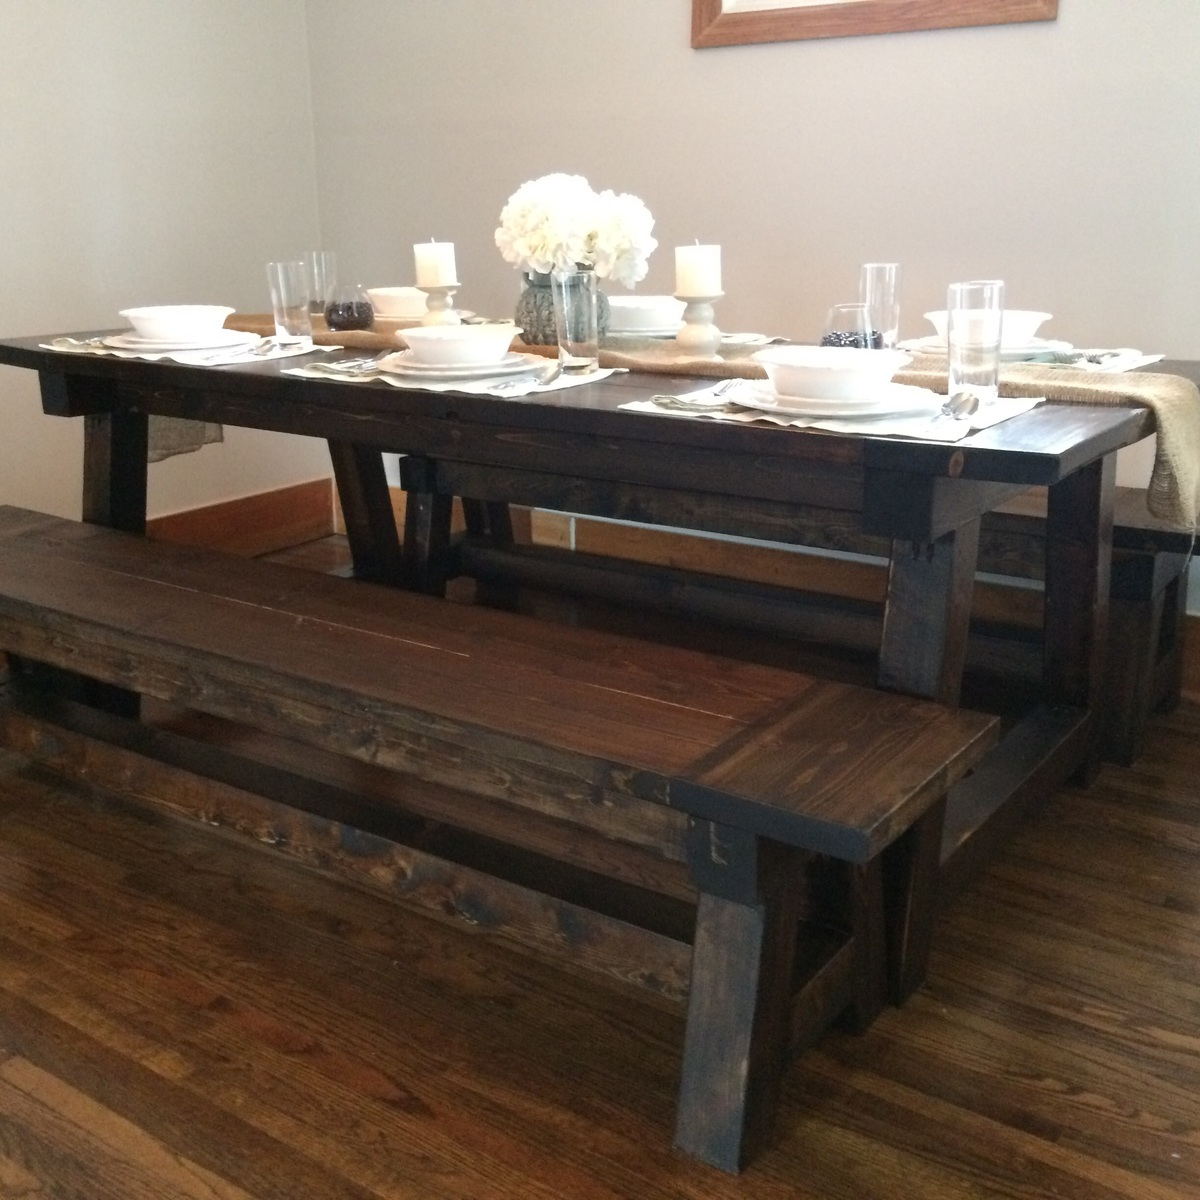 Build Your Own Coffee Table With Storage: Truss Table And Benches - DIY Projects